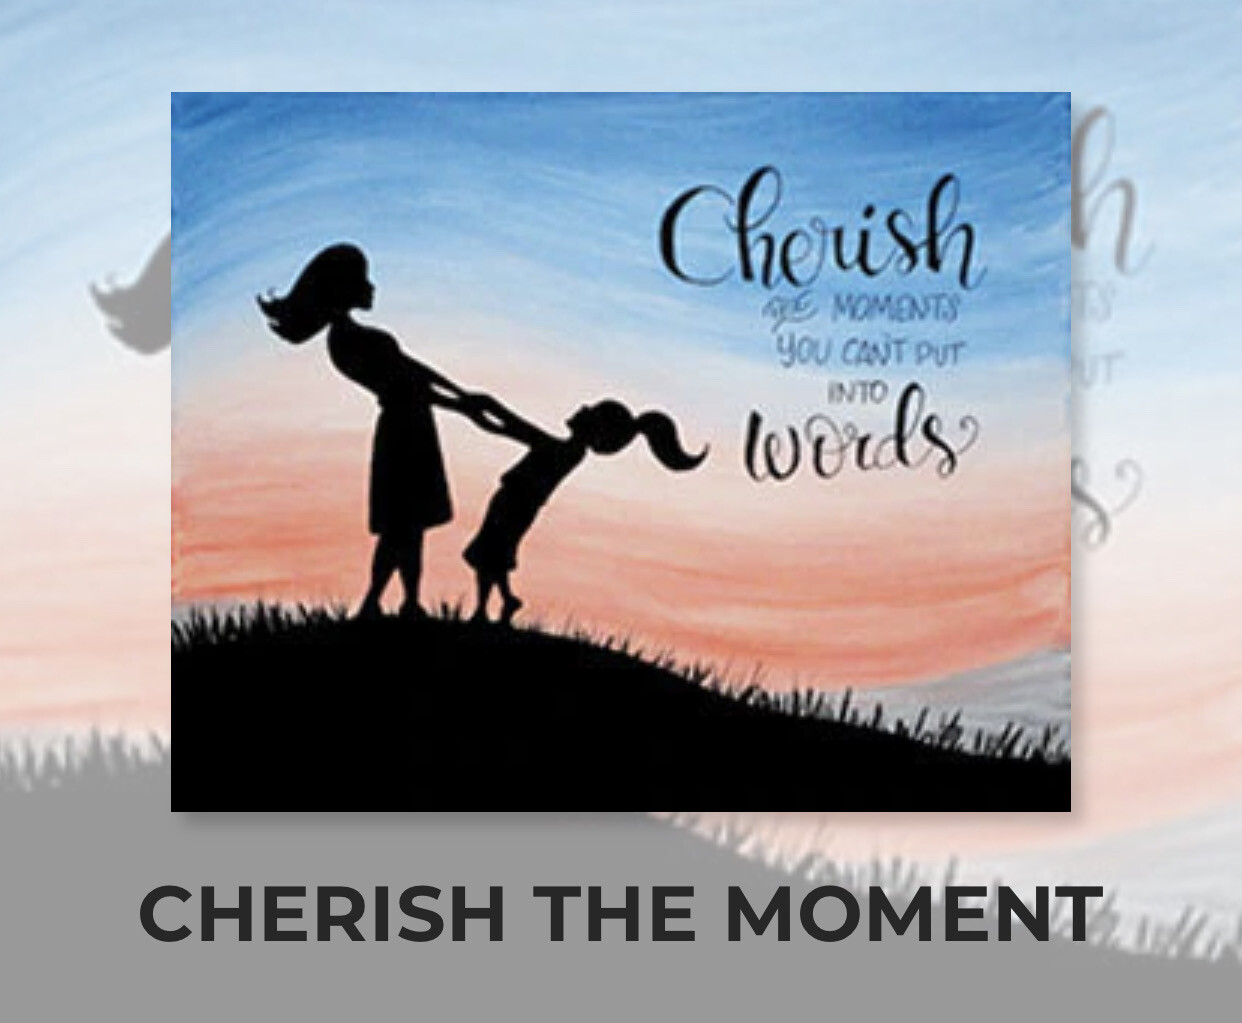 Cherish The Moment ADULT Acrylic Paint On Canvas DIY Art Kit - 3 Week Special Order